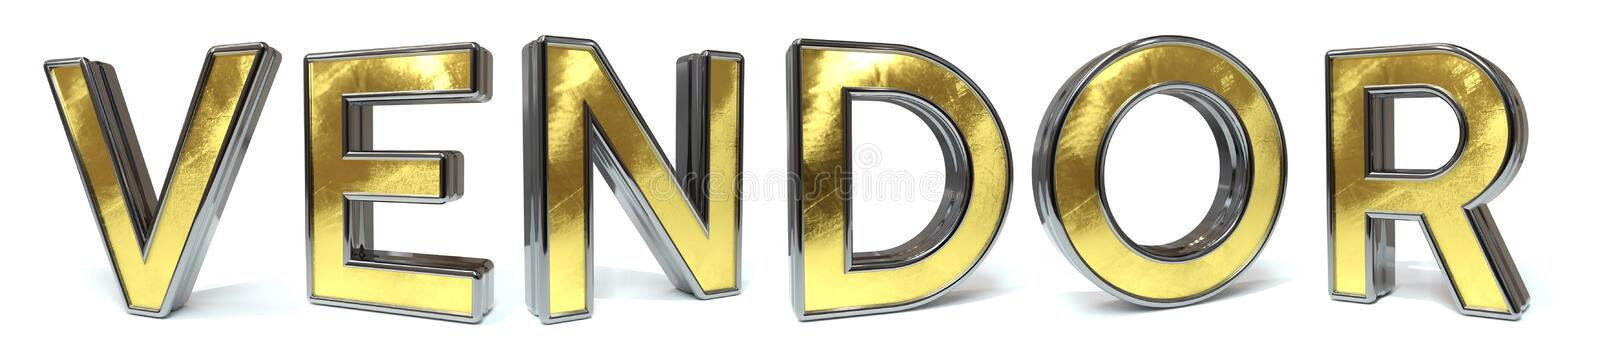 Vendor golden text. Vendor 3d rendered gold and silver color text on white royalty free illustration